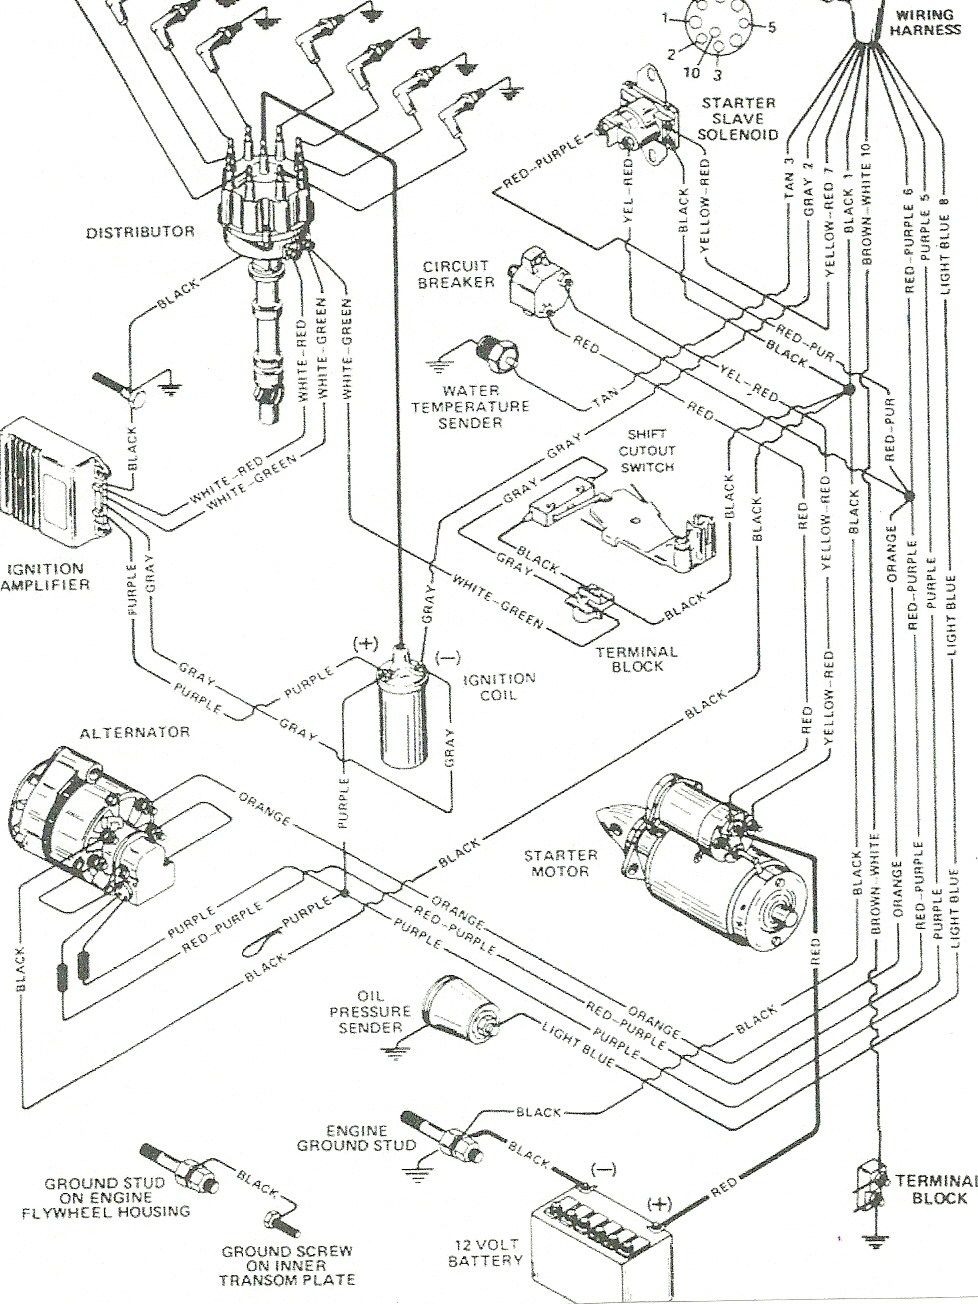 Wiring Diagram For Mercruiser 140 Diagram Electrical Diagram